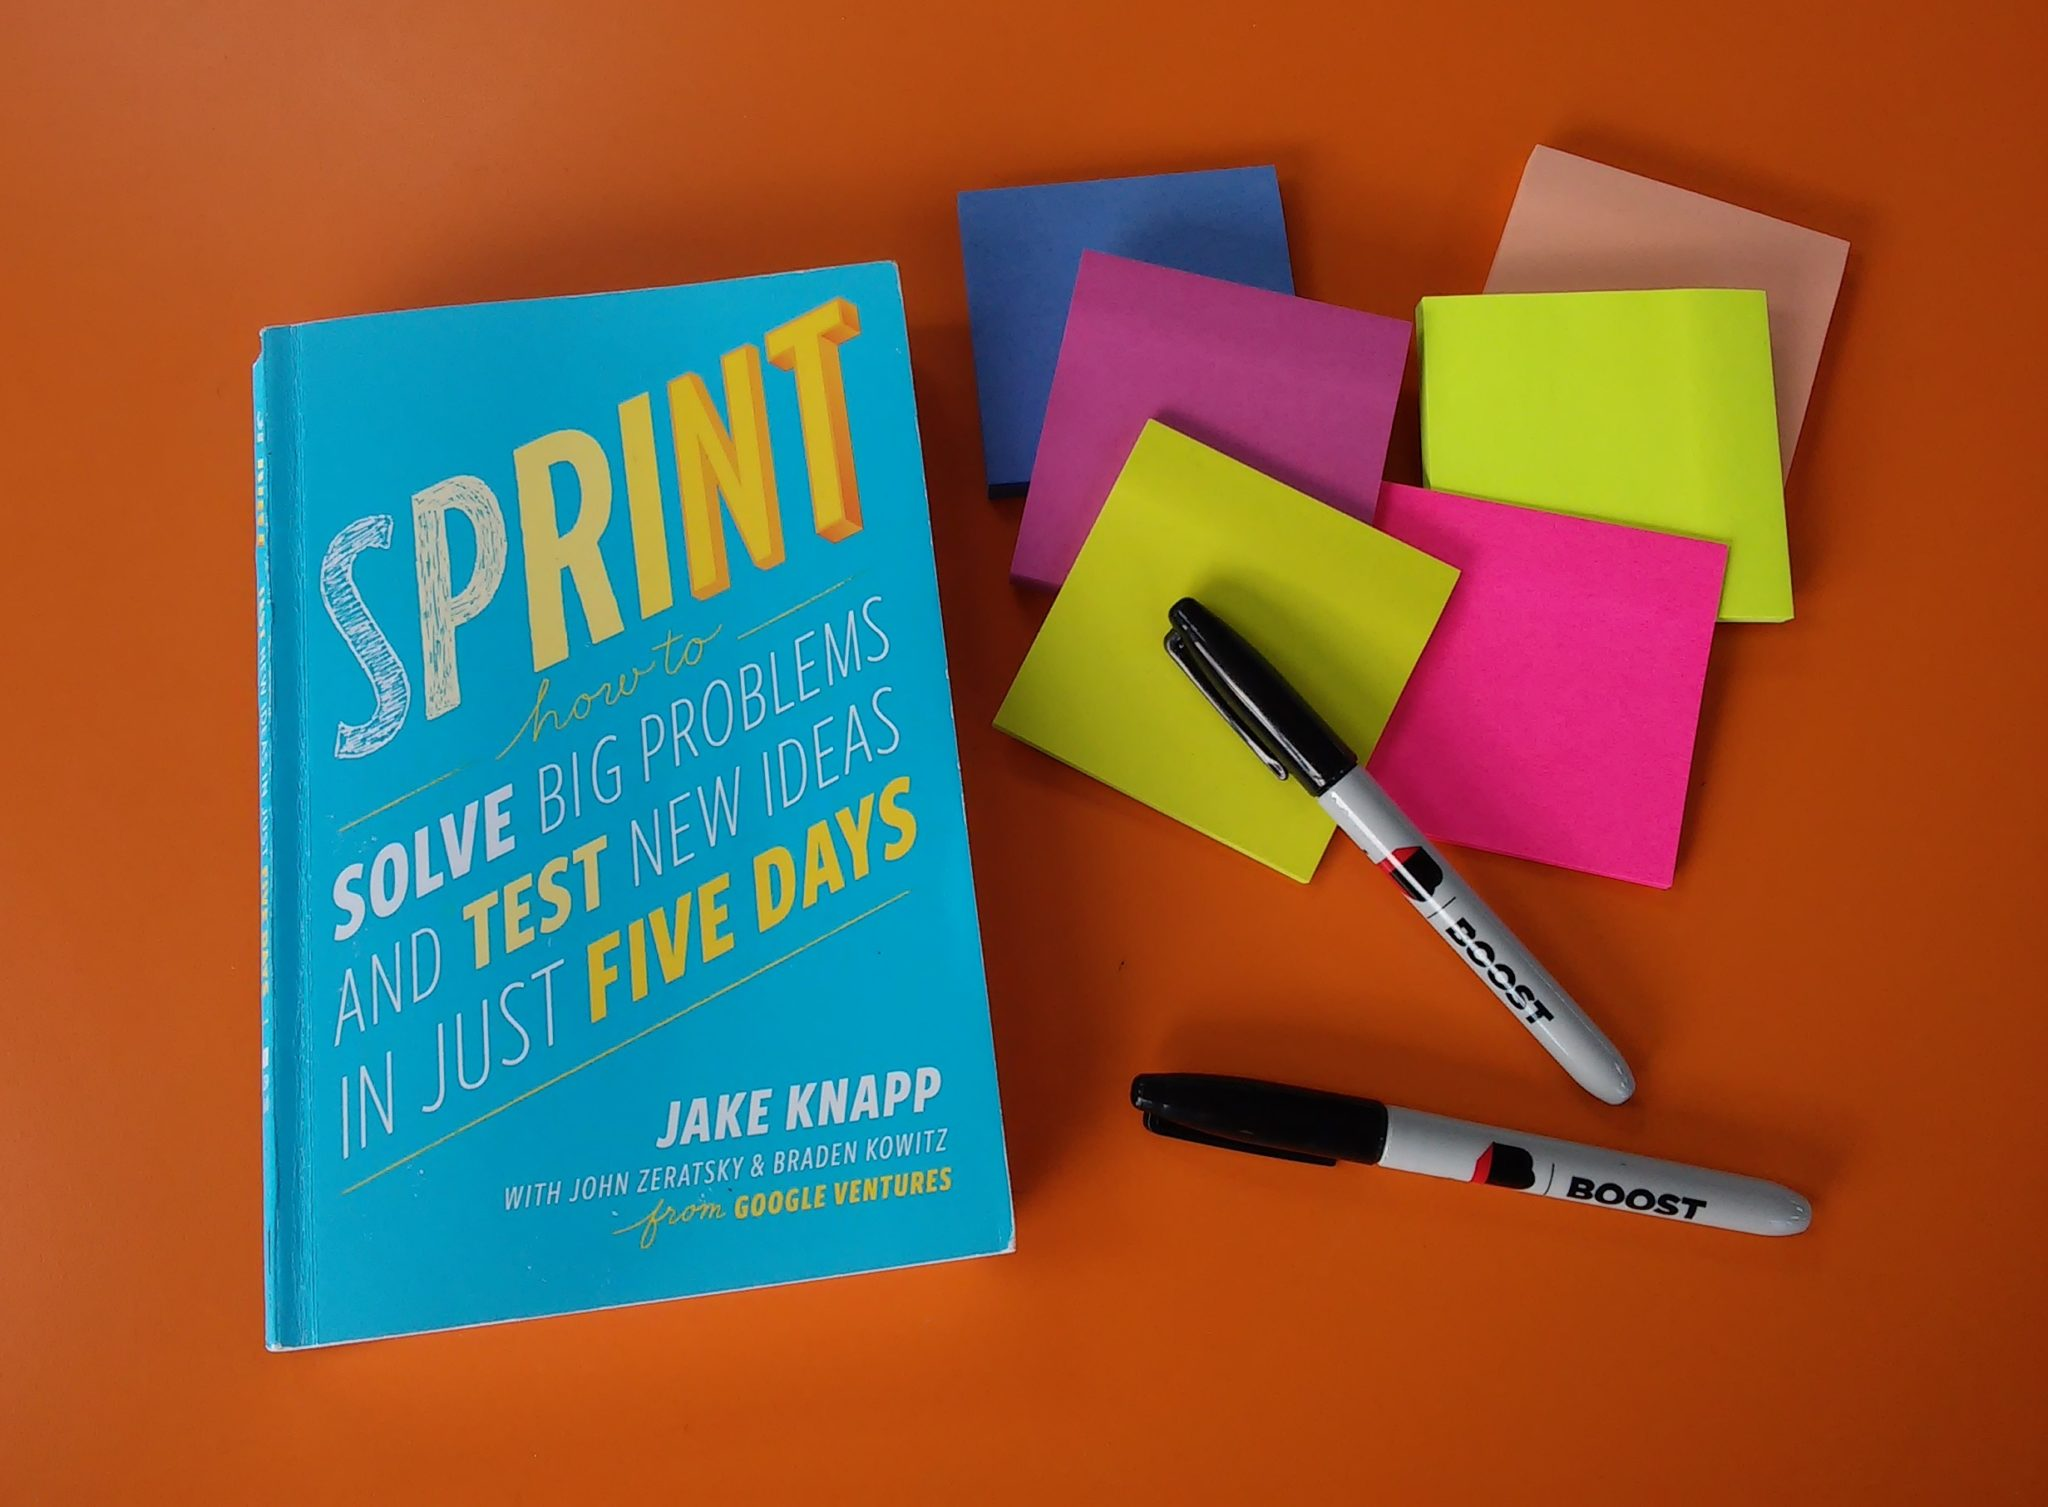 The Google Design Sprint book with post-its and pens.